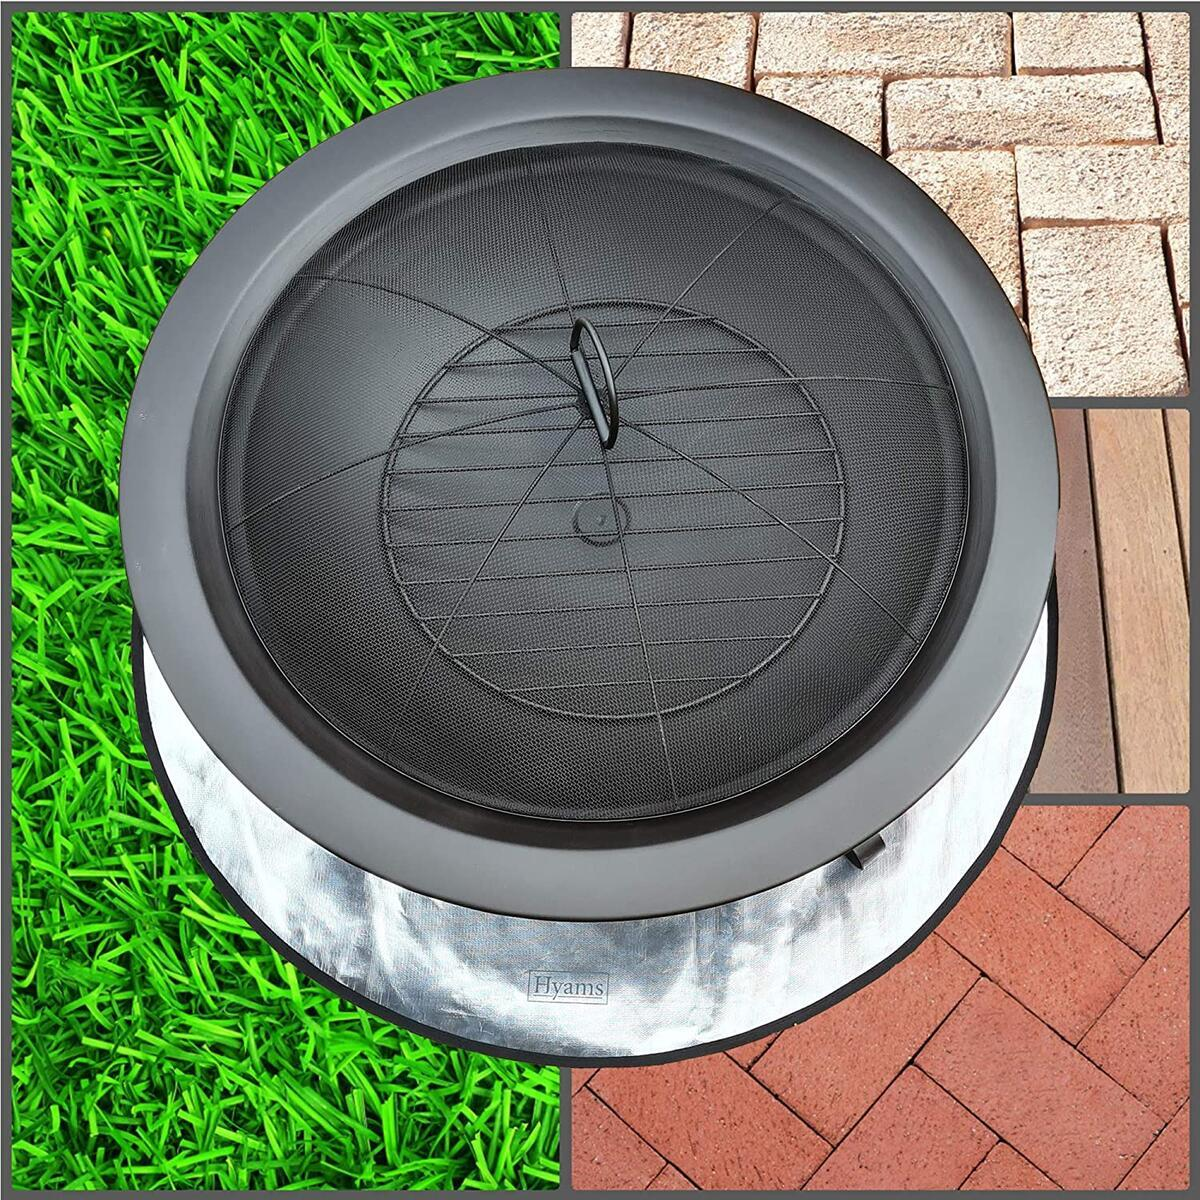 HYAMS Fire Pit Pad Mat Round 36 Inch with Storage Bag, Under Grill Chiminea BBQ Mat, Deck, Lawn, Grass, Patio Protector, Heat Resistant Shield Pad, Firepit Accessory for Outdoors